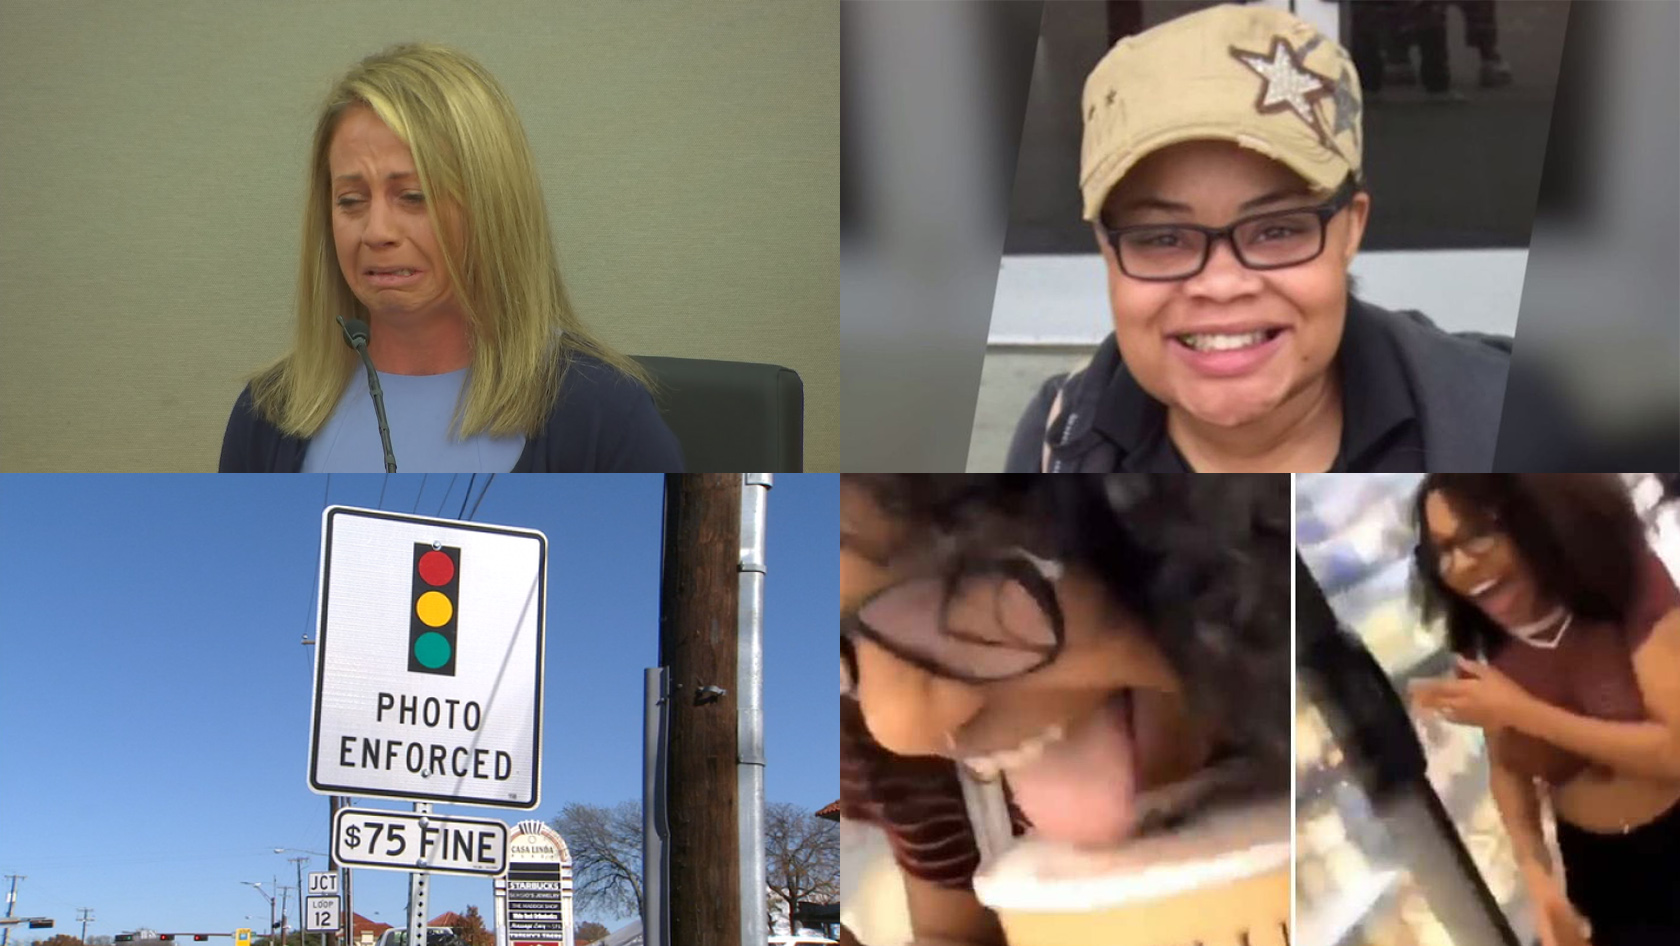 The 10 most-read stories of 2019 on Fox4News.com